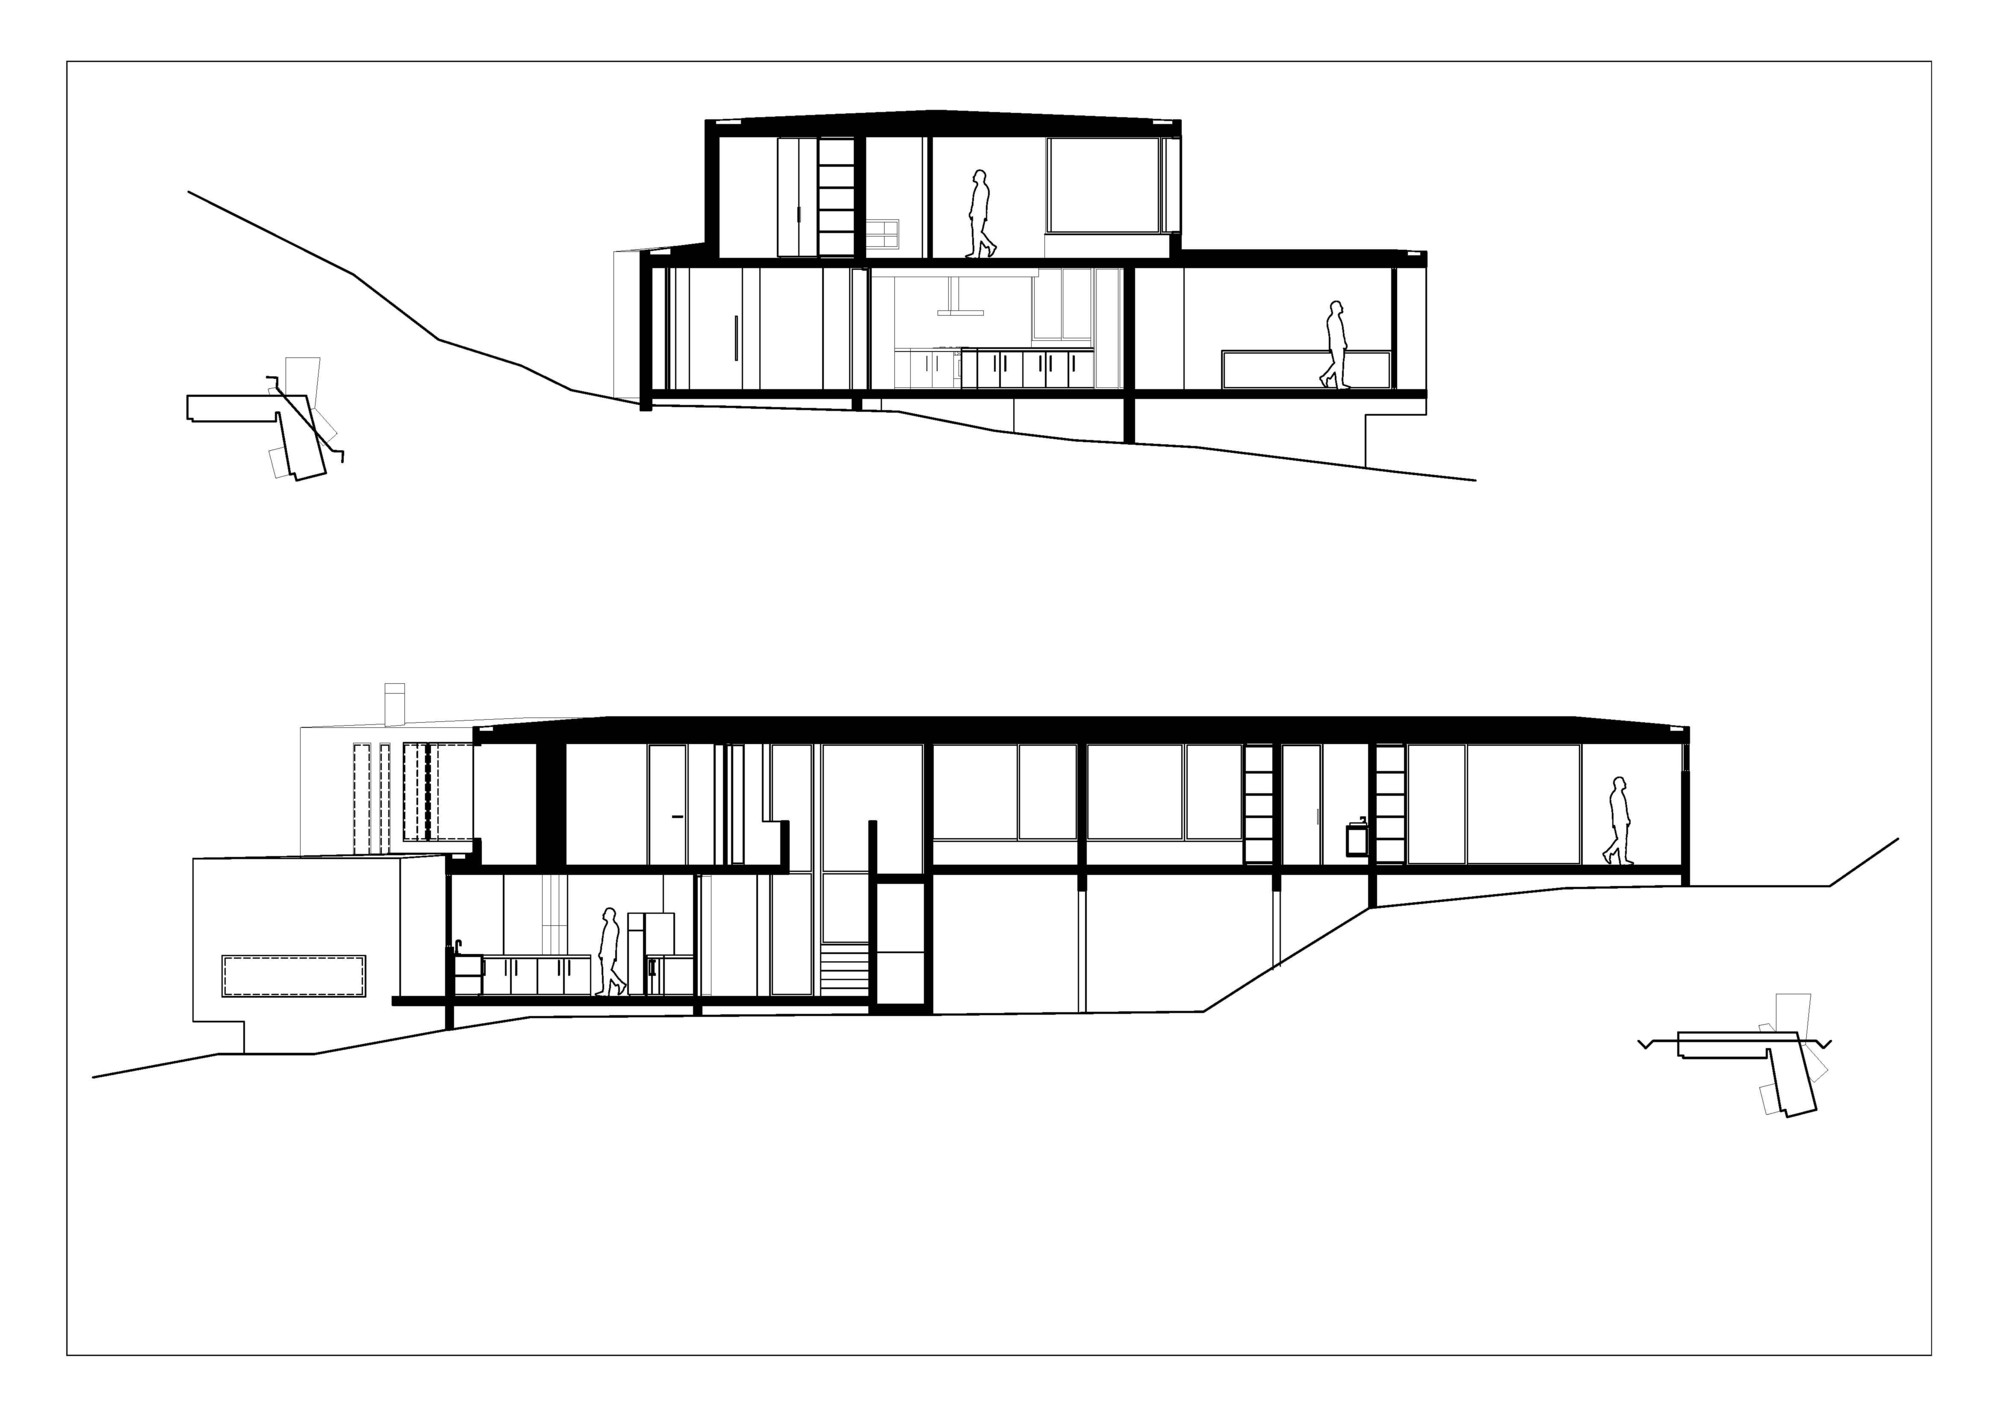 Eames House Floor Plan Gallery Of Catch The Views House Land Arquitectos 18